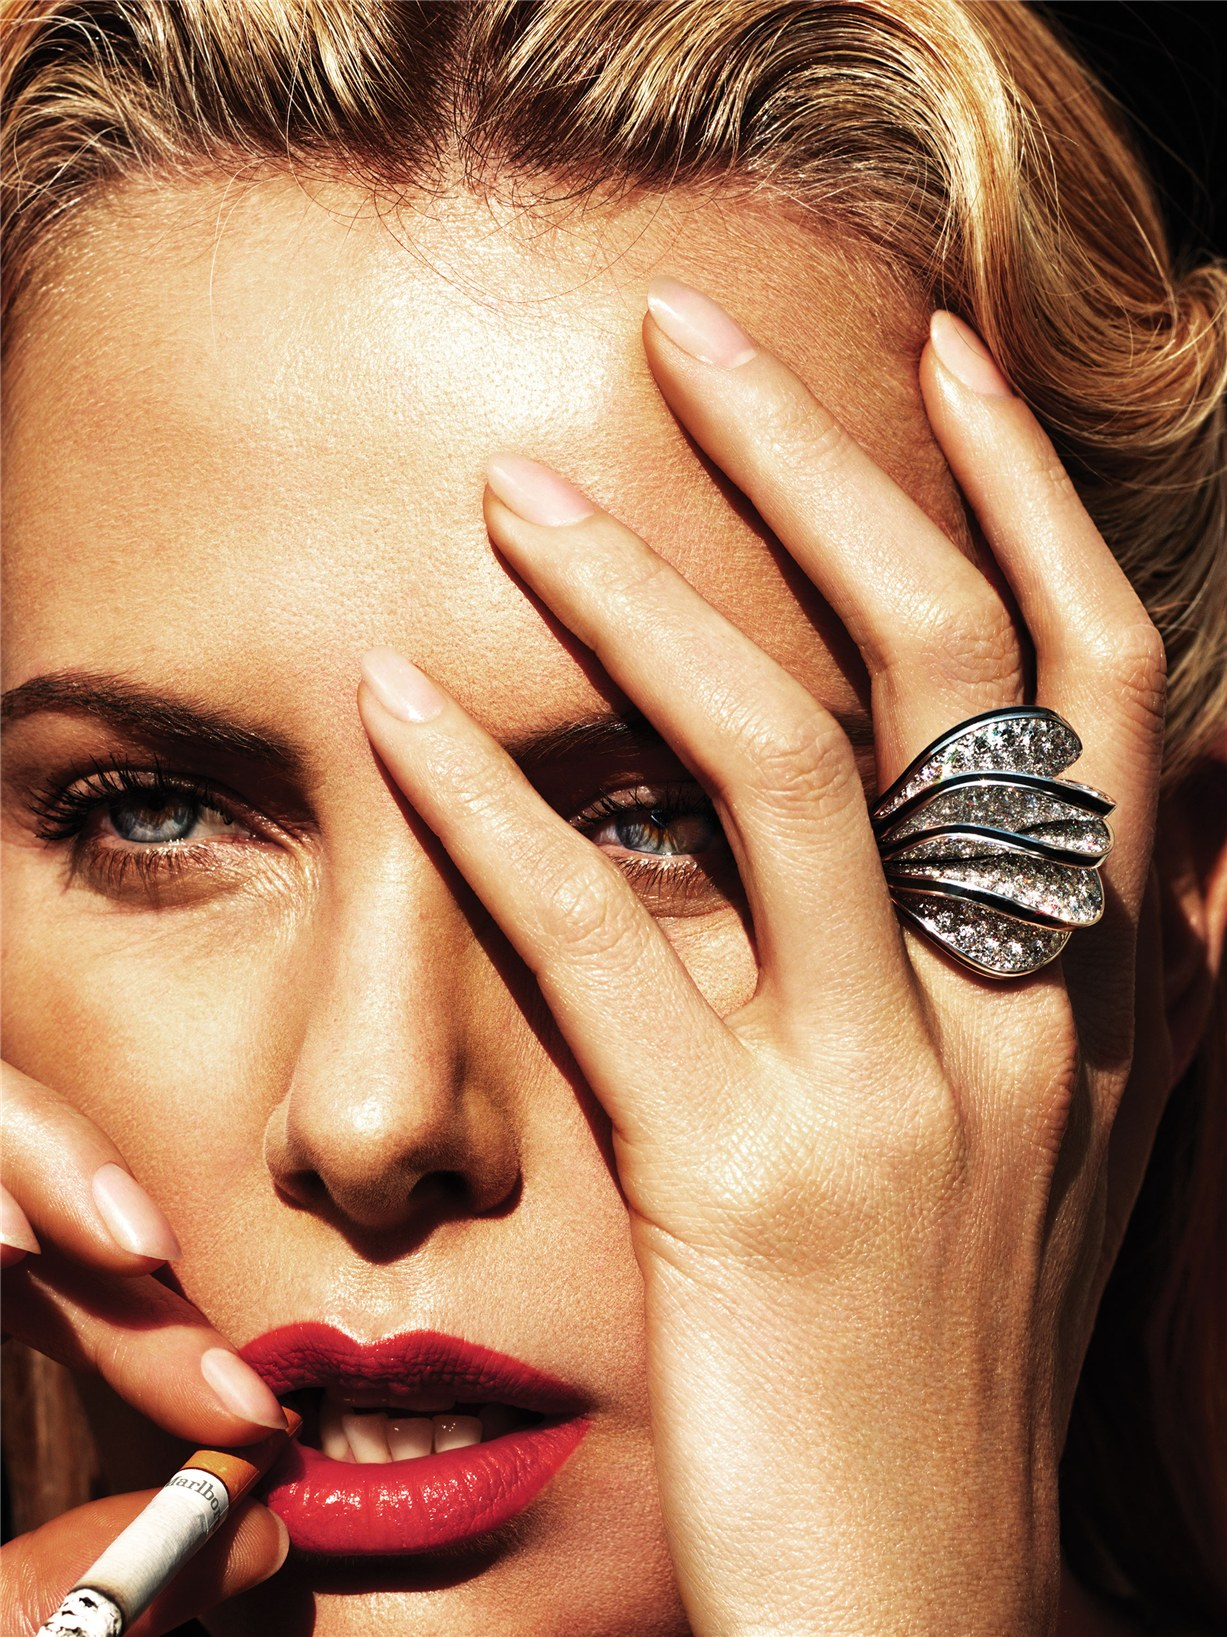 Звезда нового -Безумного Макса- Шарлиз Терон / Charlize Theron by Mert Alas and Marcus Piggott in W Magazine may 2015